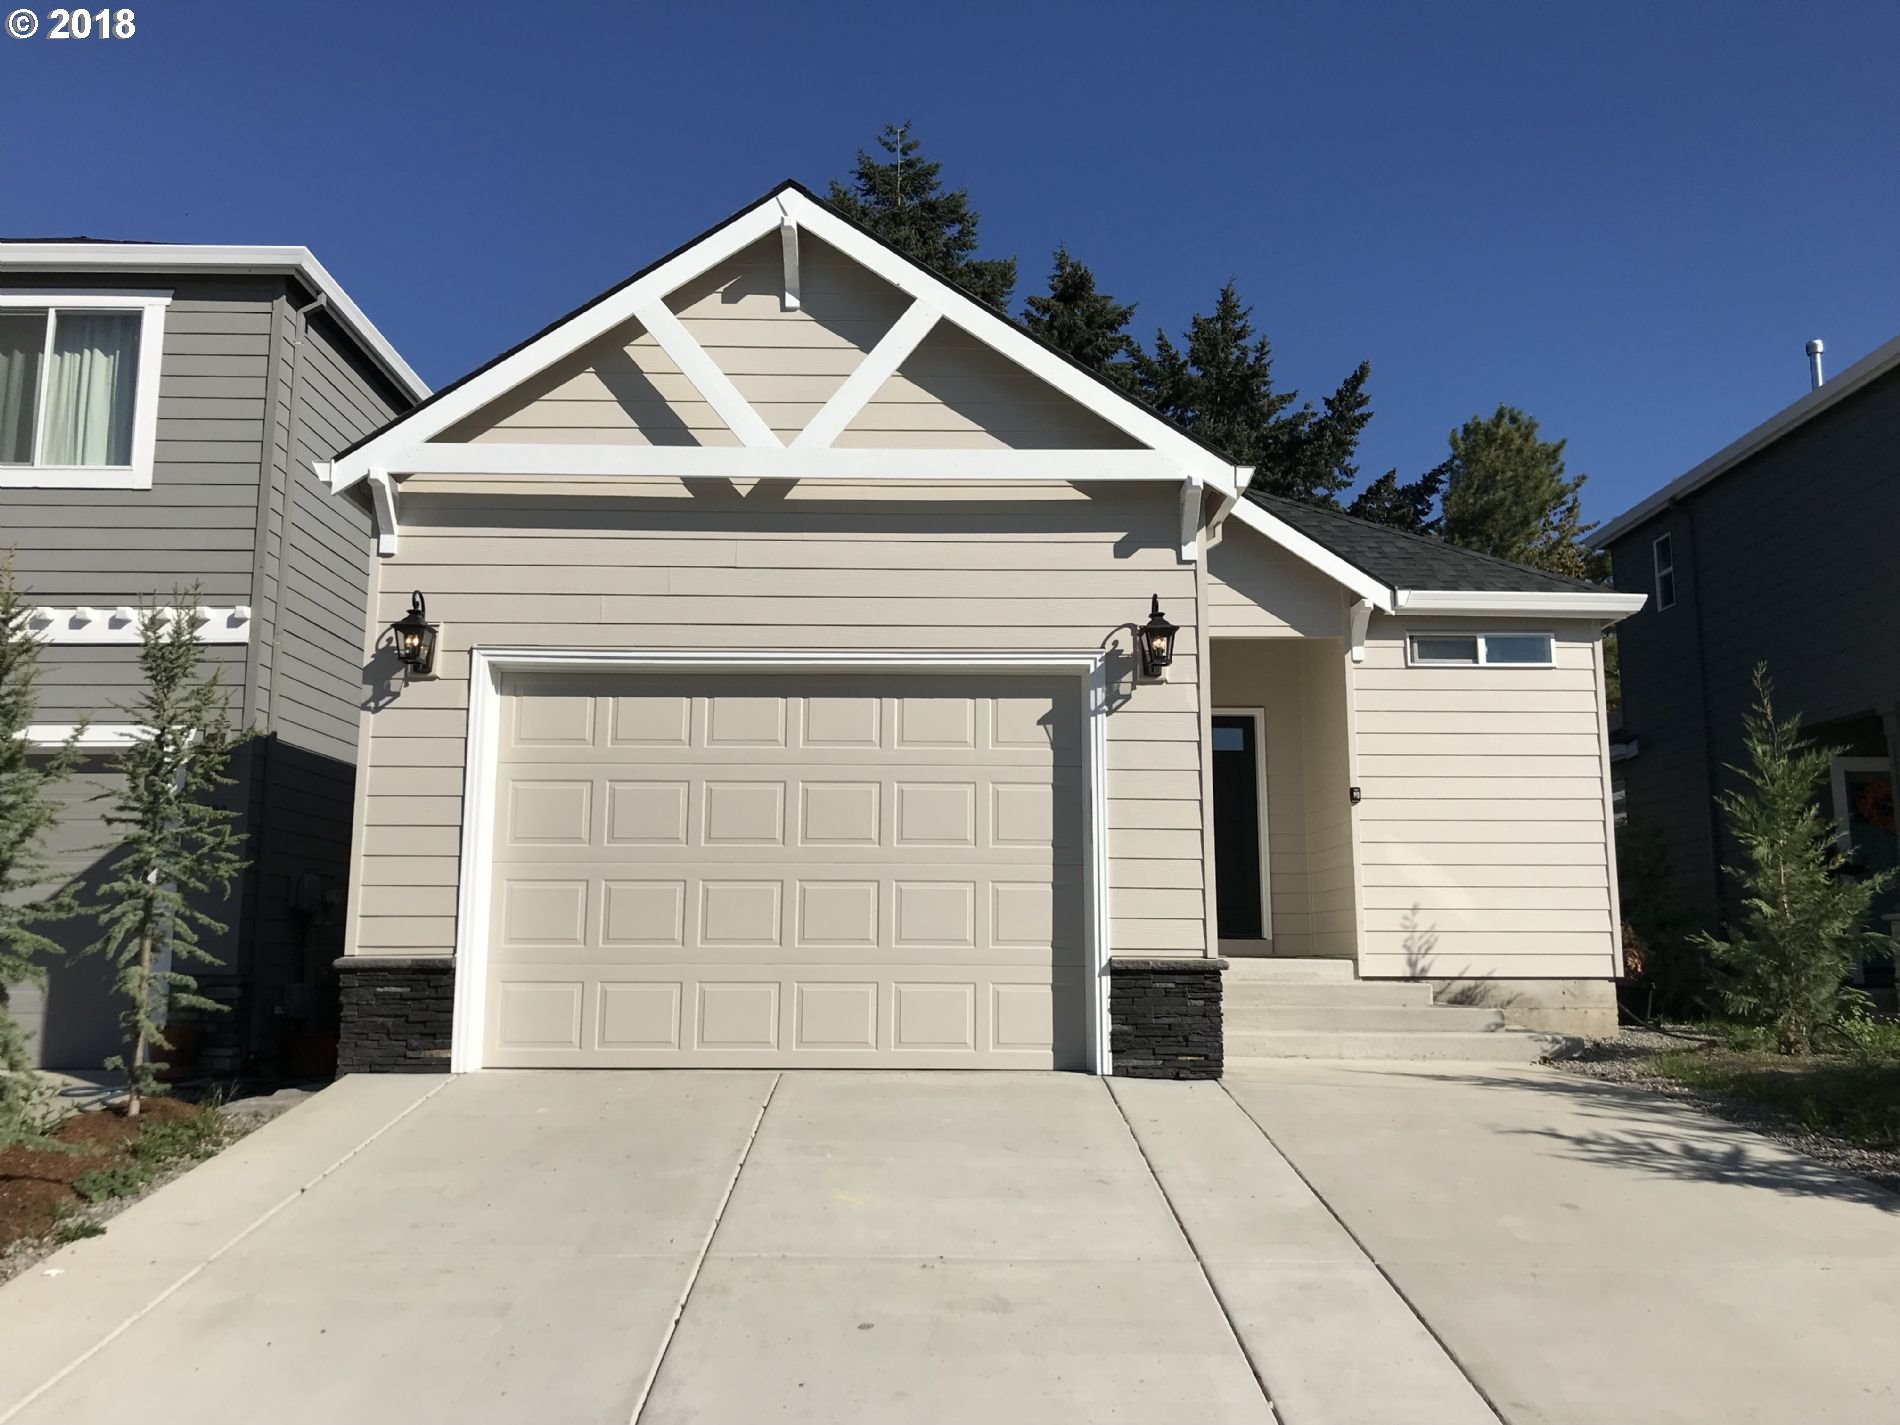 1885 sq. ft 3 bedrooms 3 bathrooms  House For Sale, Beaverton, OR